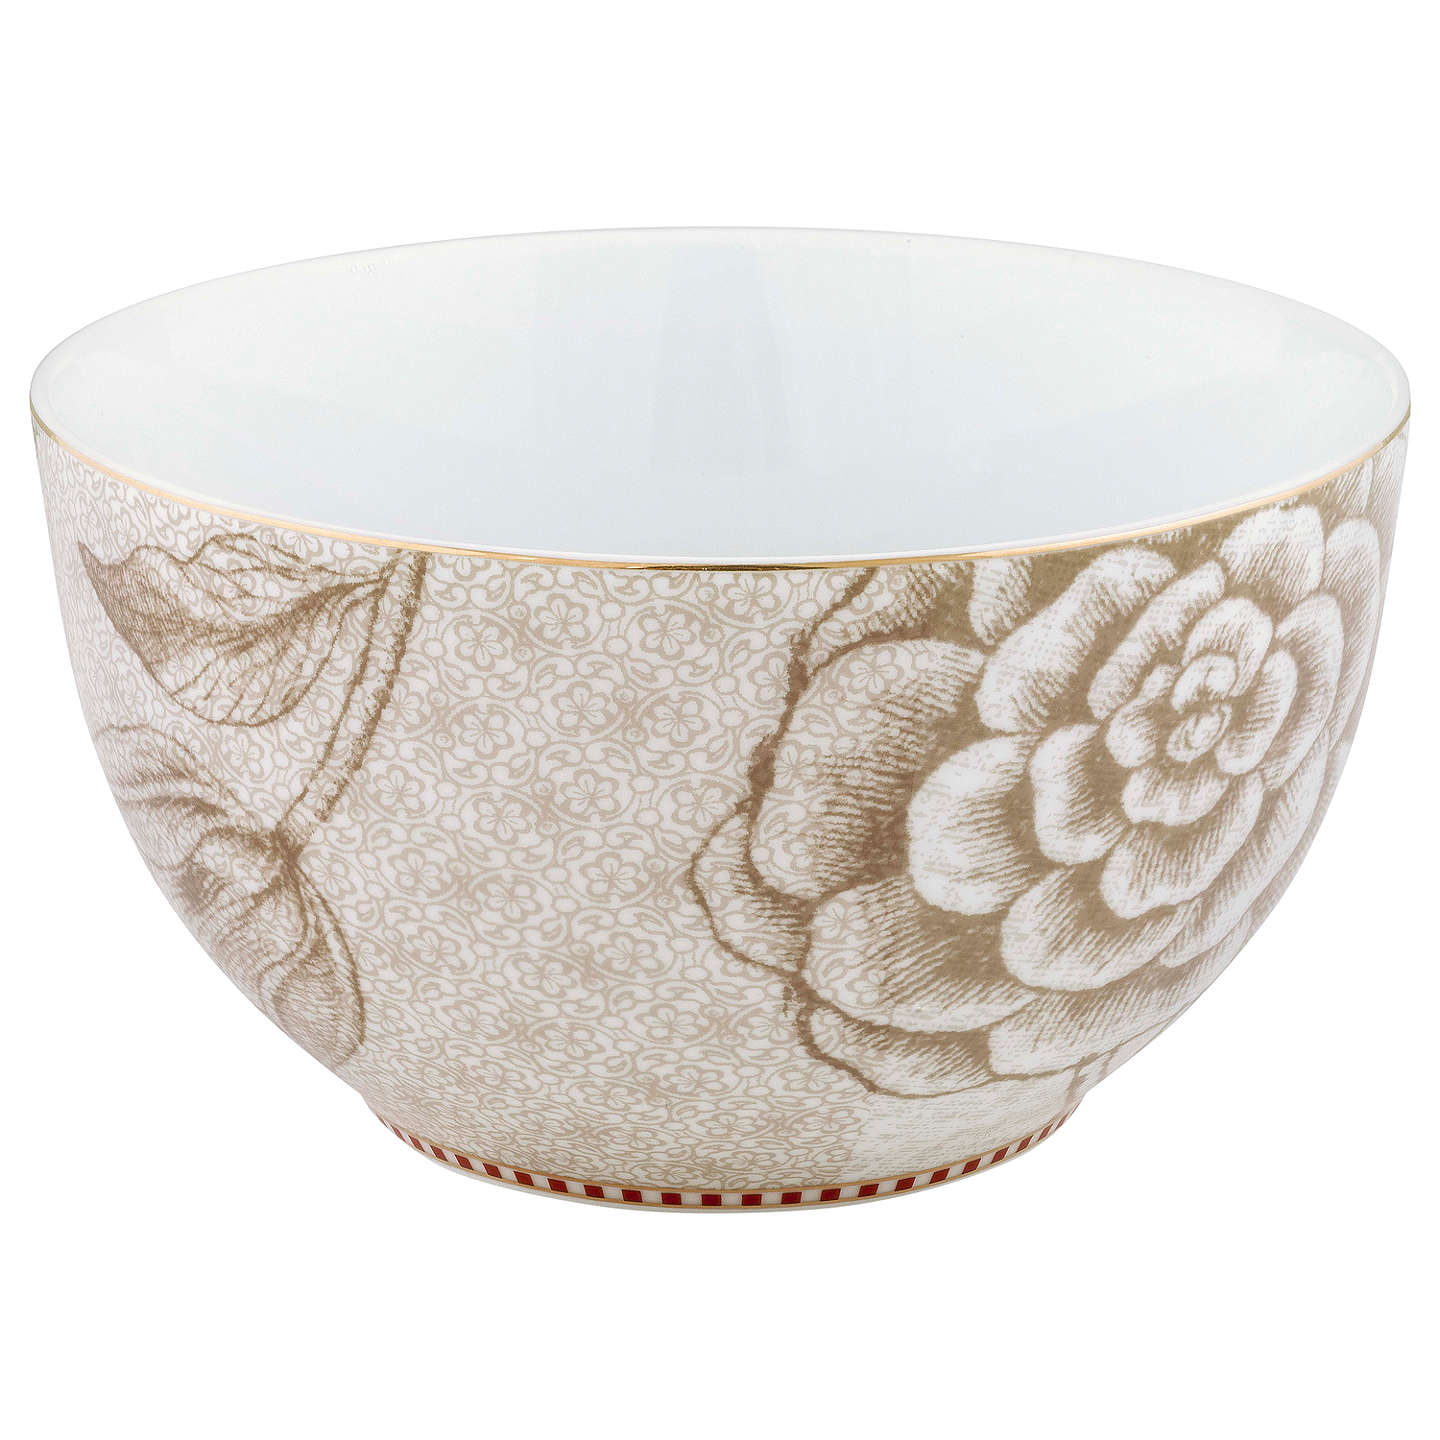 BuyPiP Studio Spring To Life Bowl, Dia.15cm, Off White Online at johnlewis.com